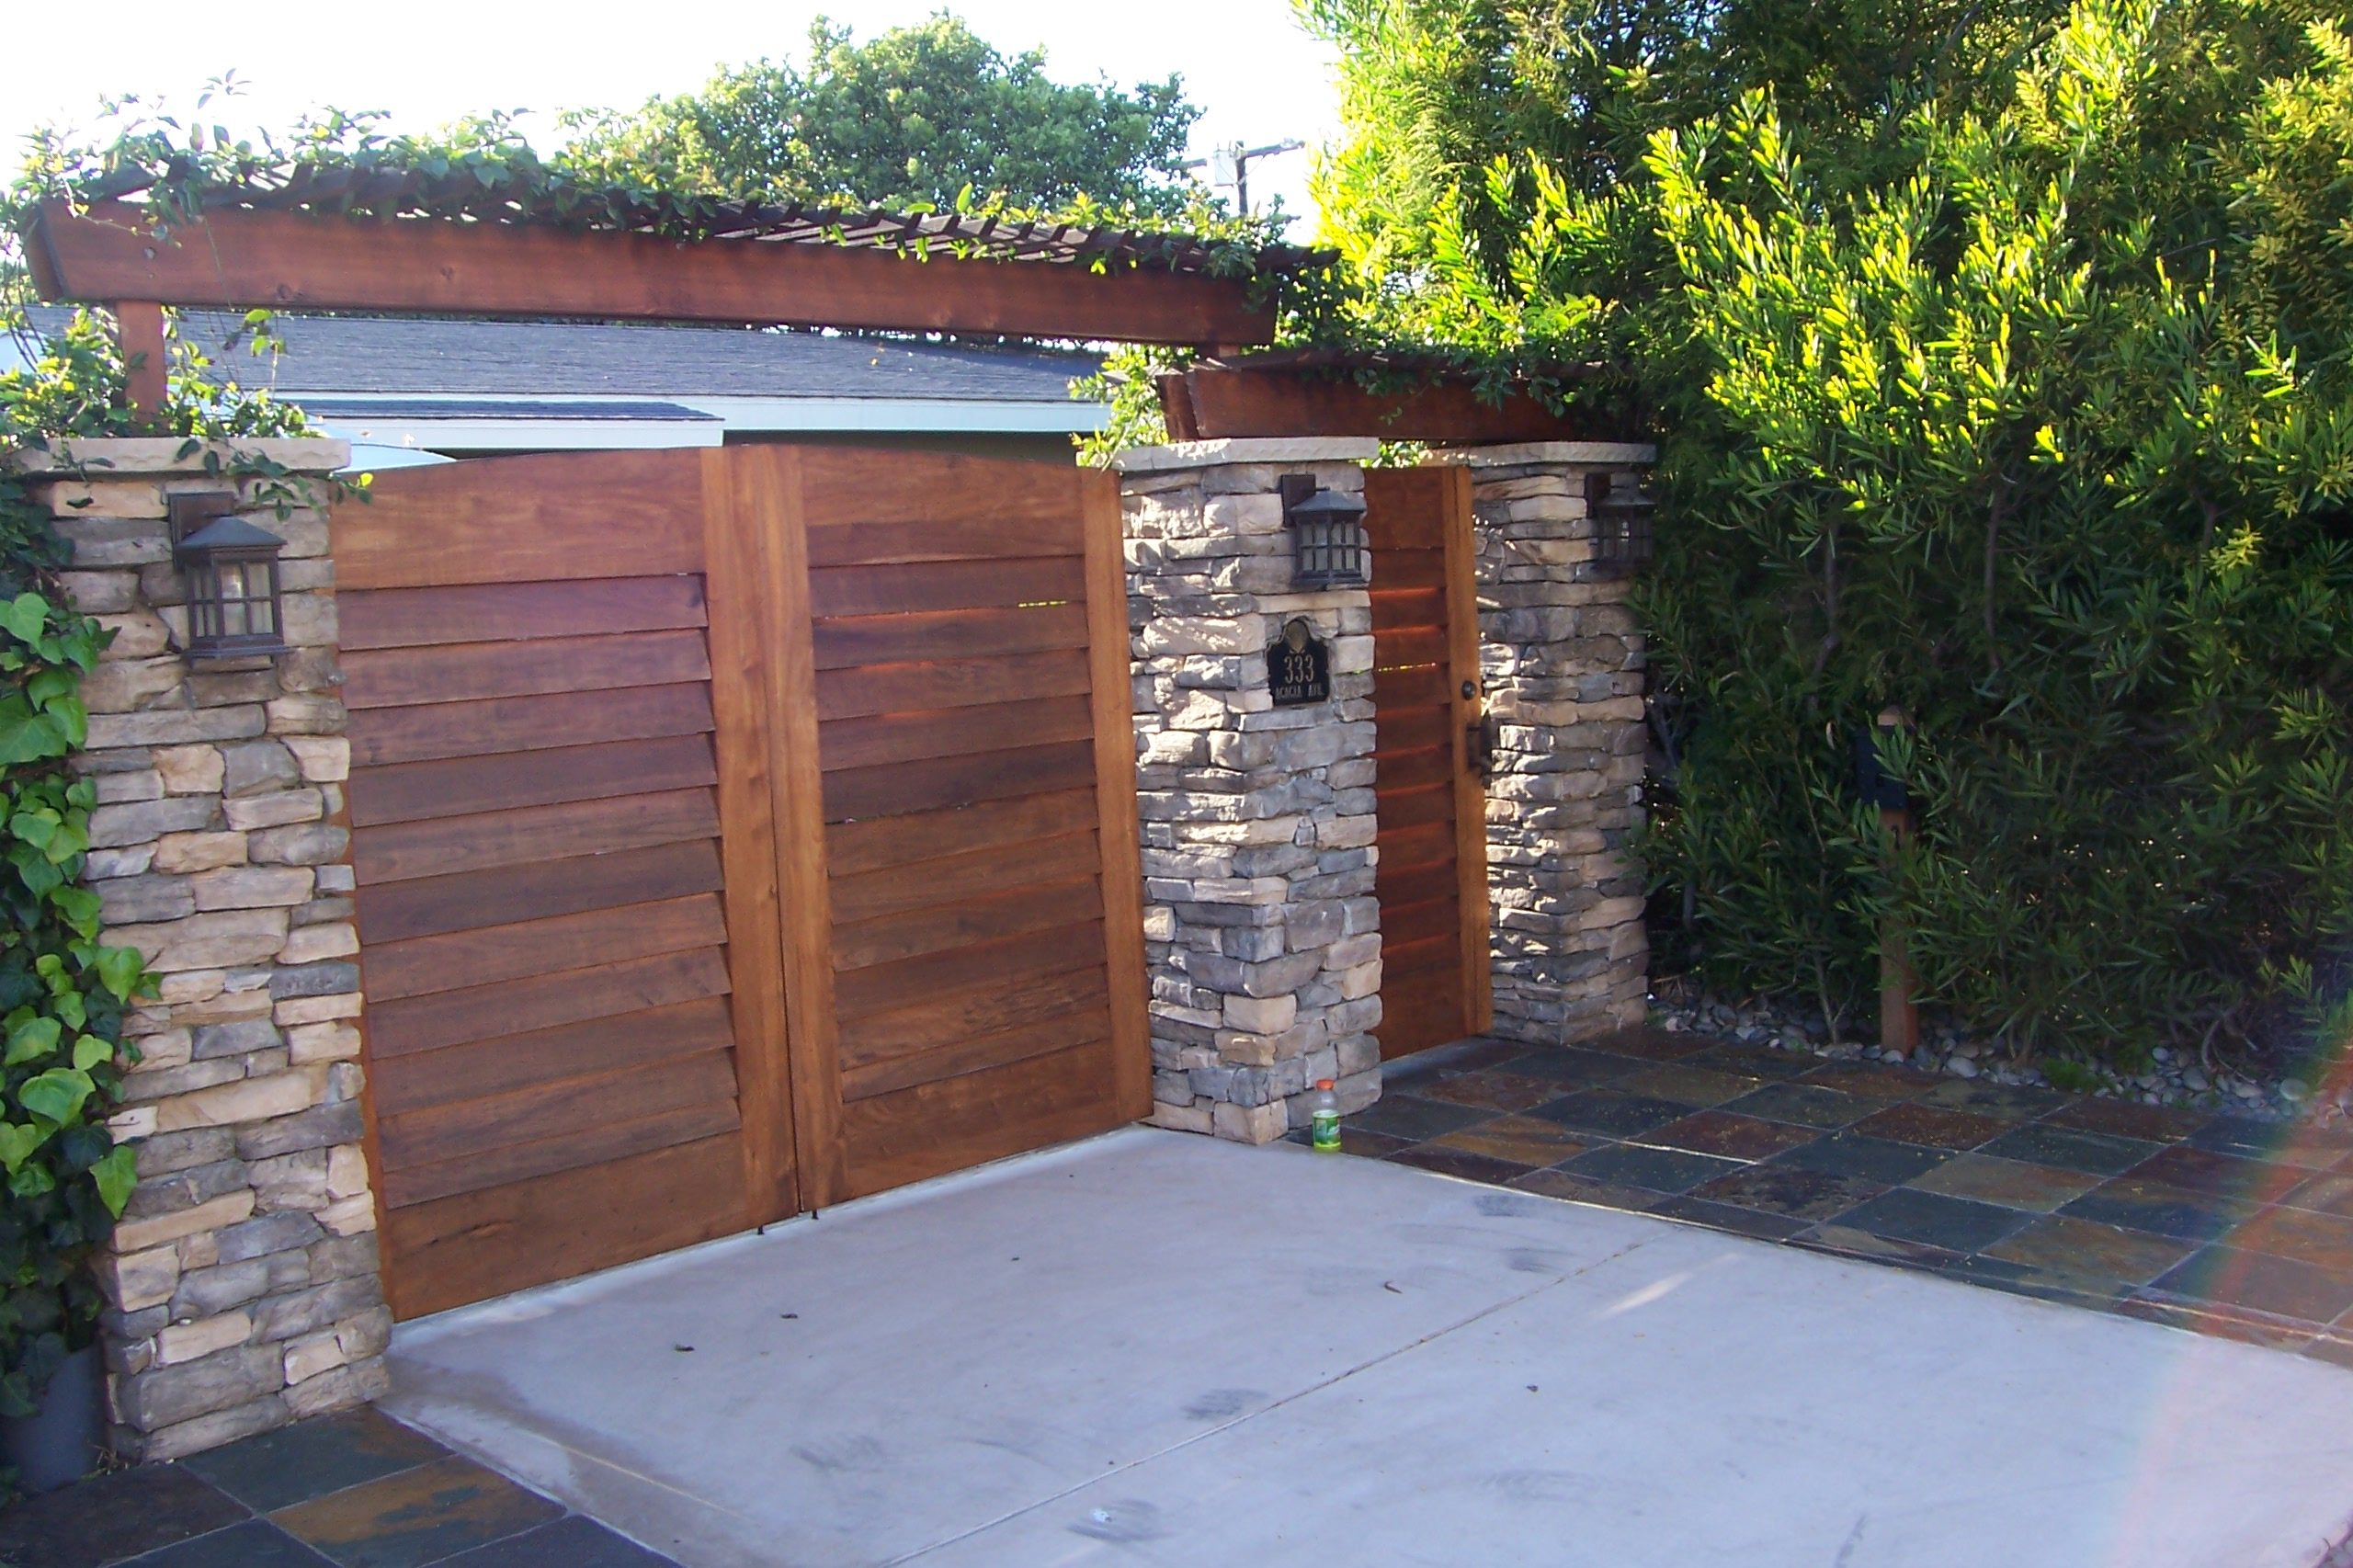 Good Creative Privacy Fence Ideas | Creative Fences, Gates And Enclosures In San  Diego U2013 Part